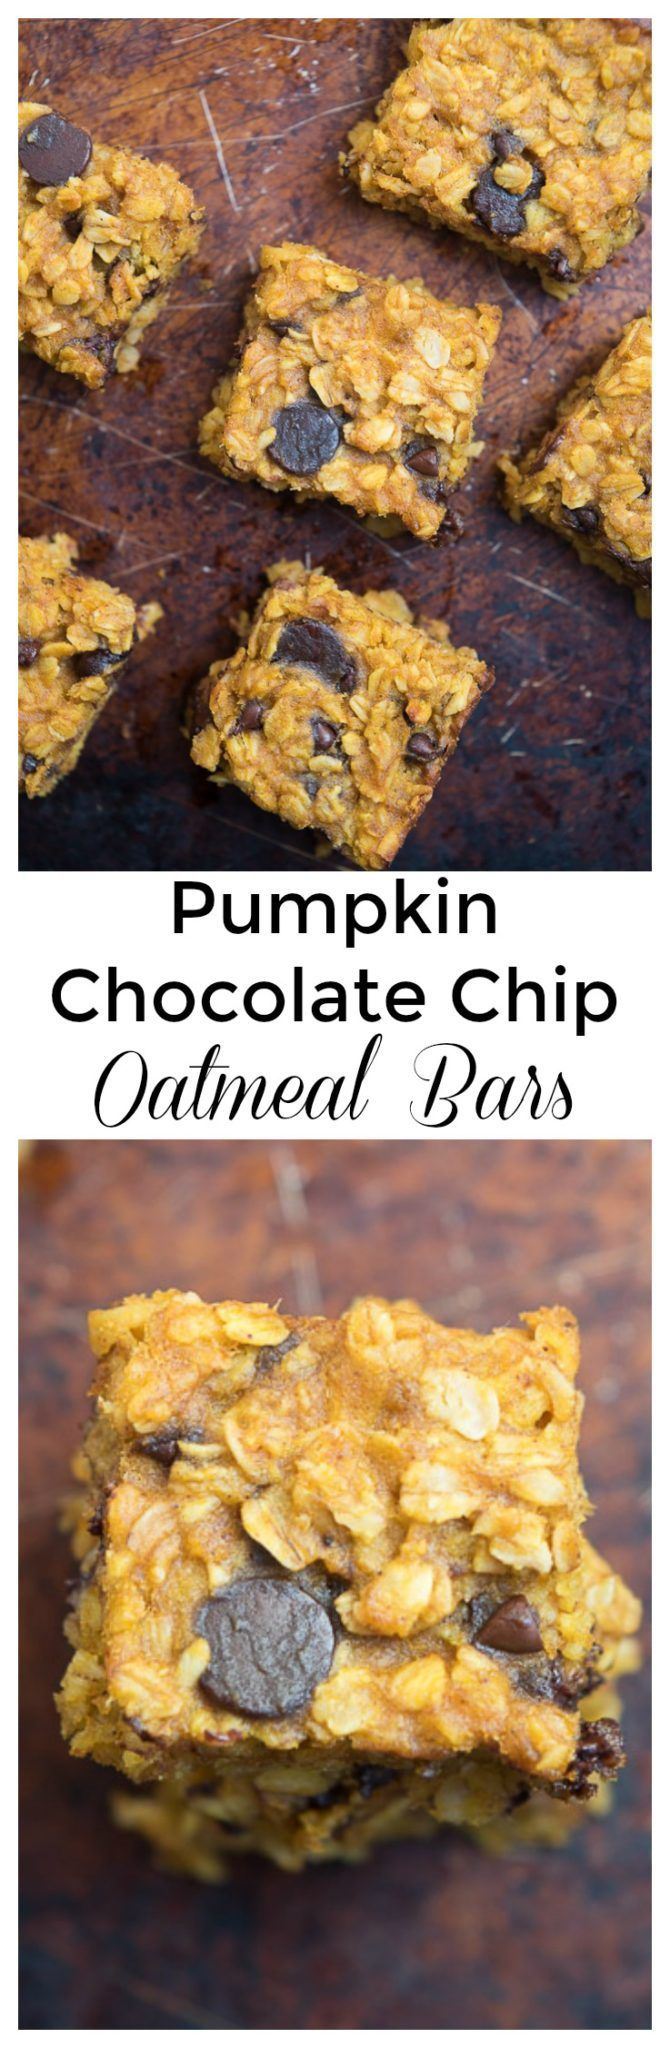 Pumpkin Chocolate Chip Oatmeal Bars- these simple, one mixing bowl bars are gluten free and a great whole grain breakfast or snack!